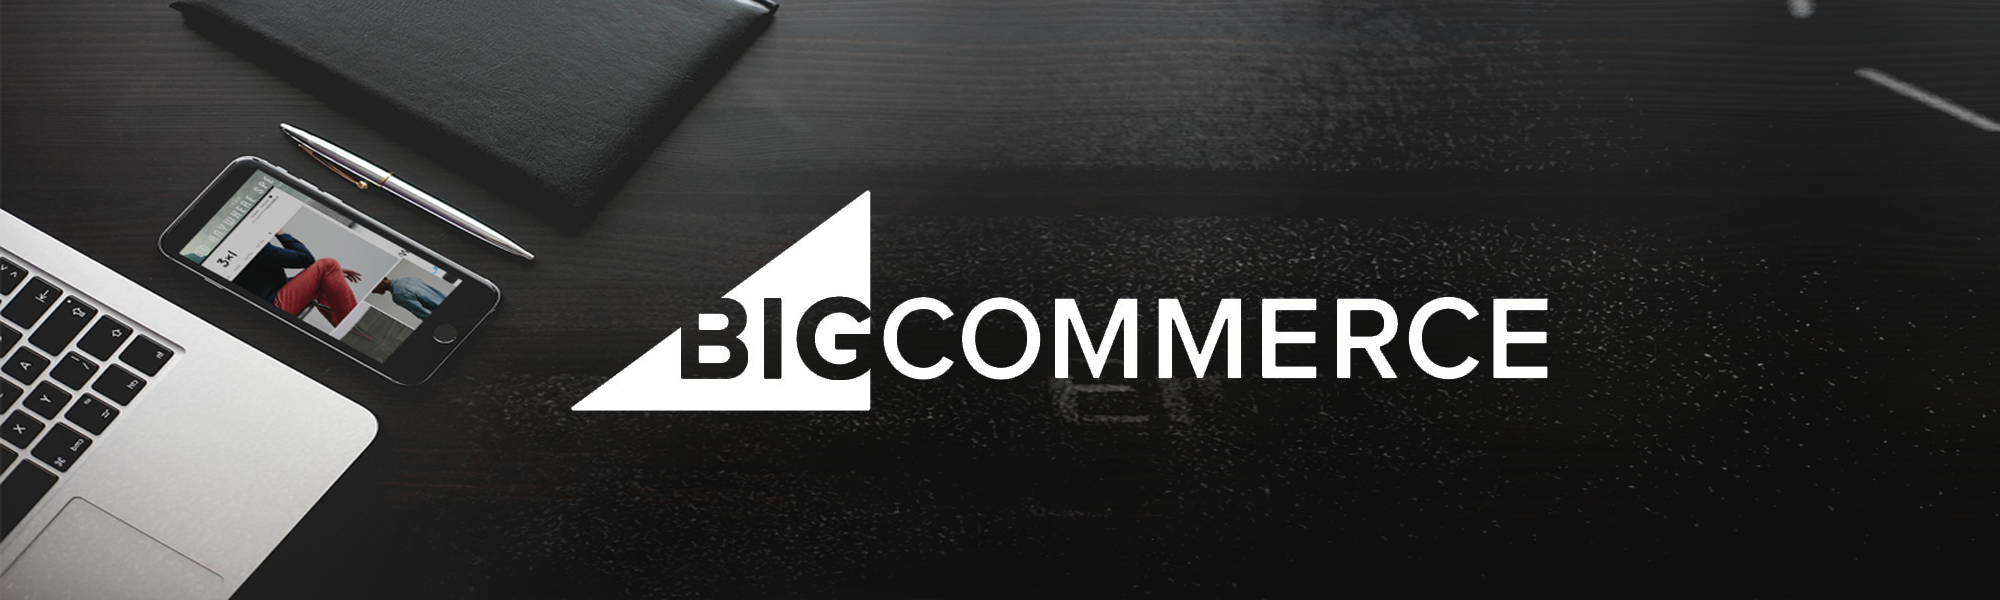 bigcommerce development services